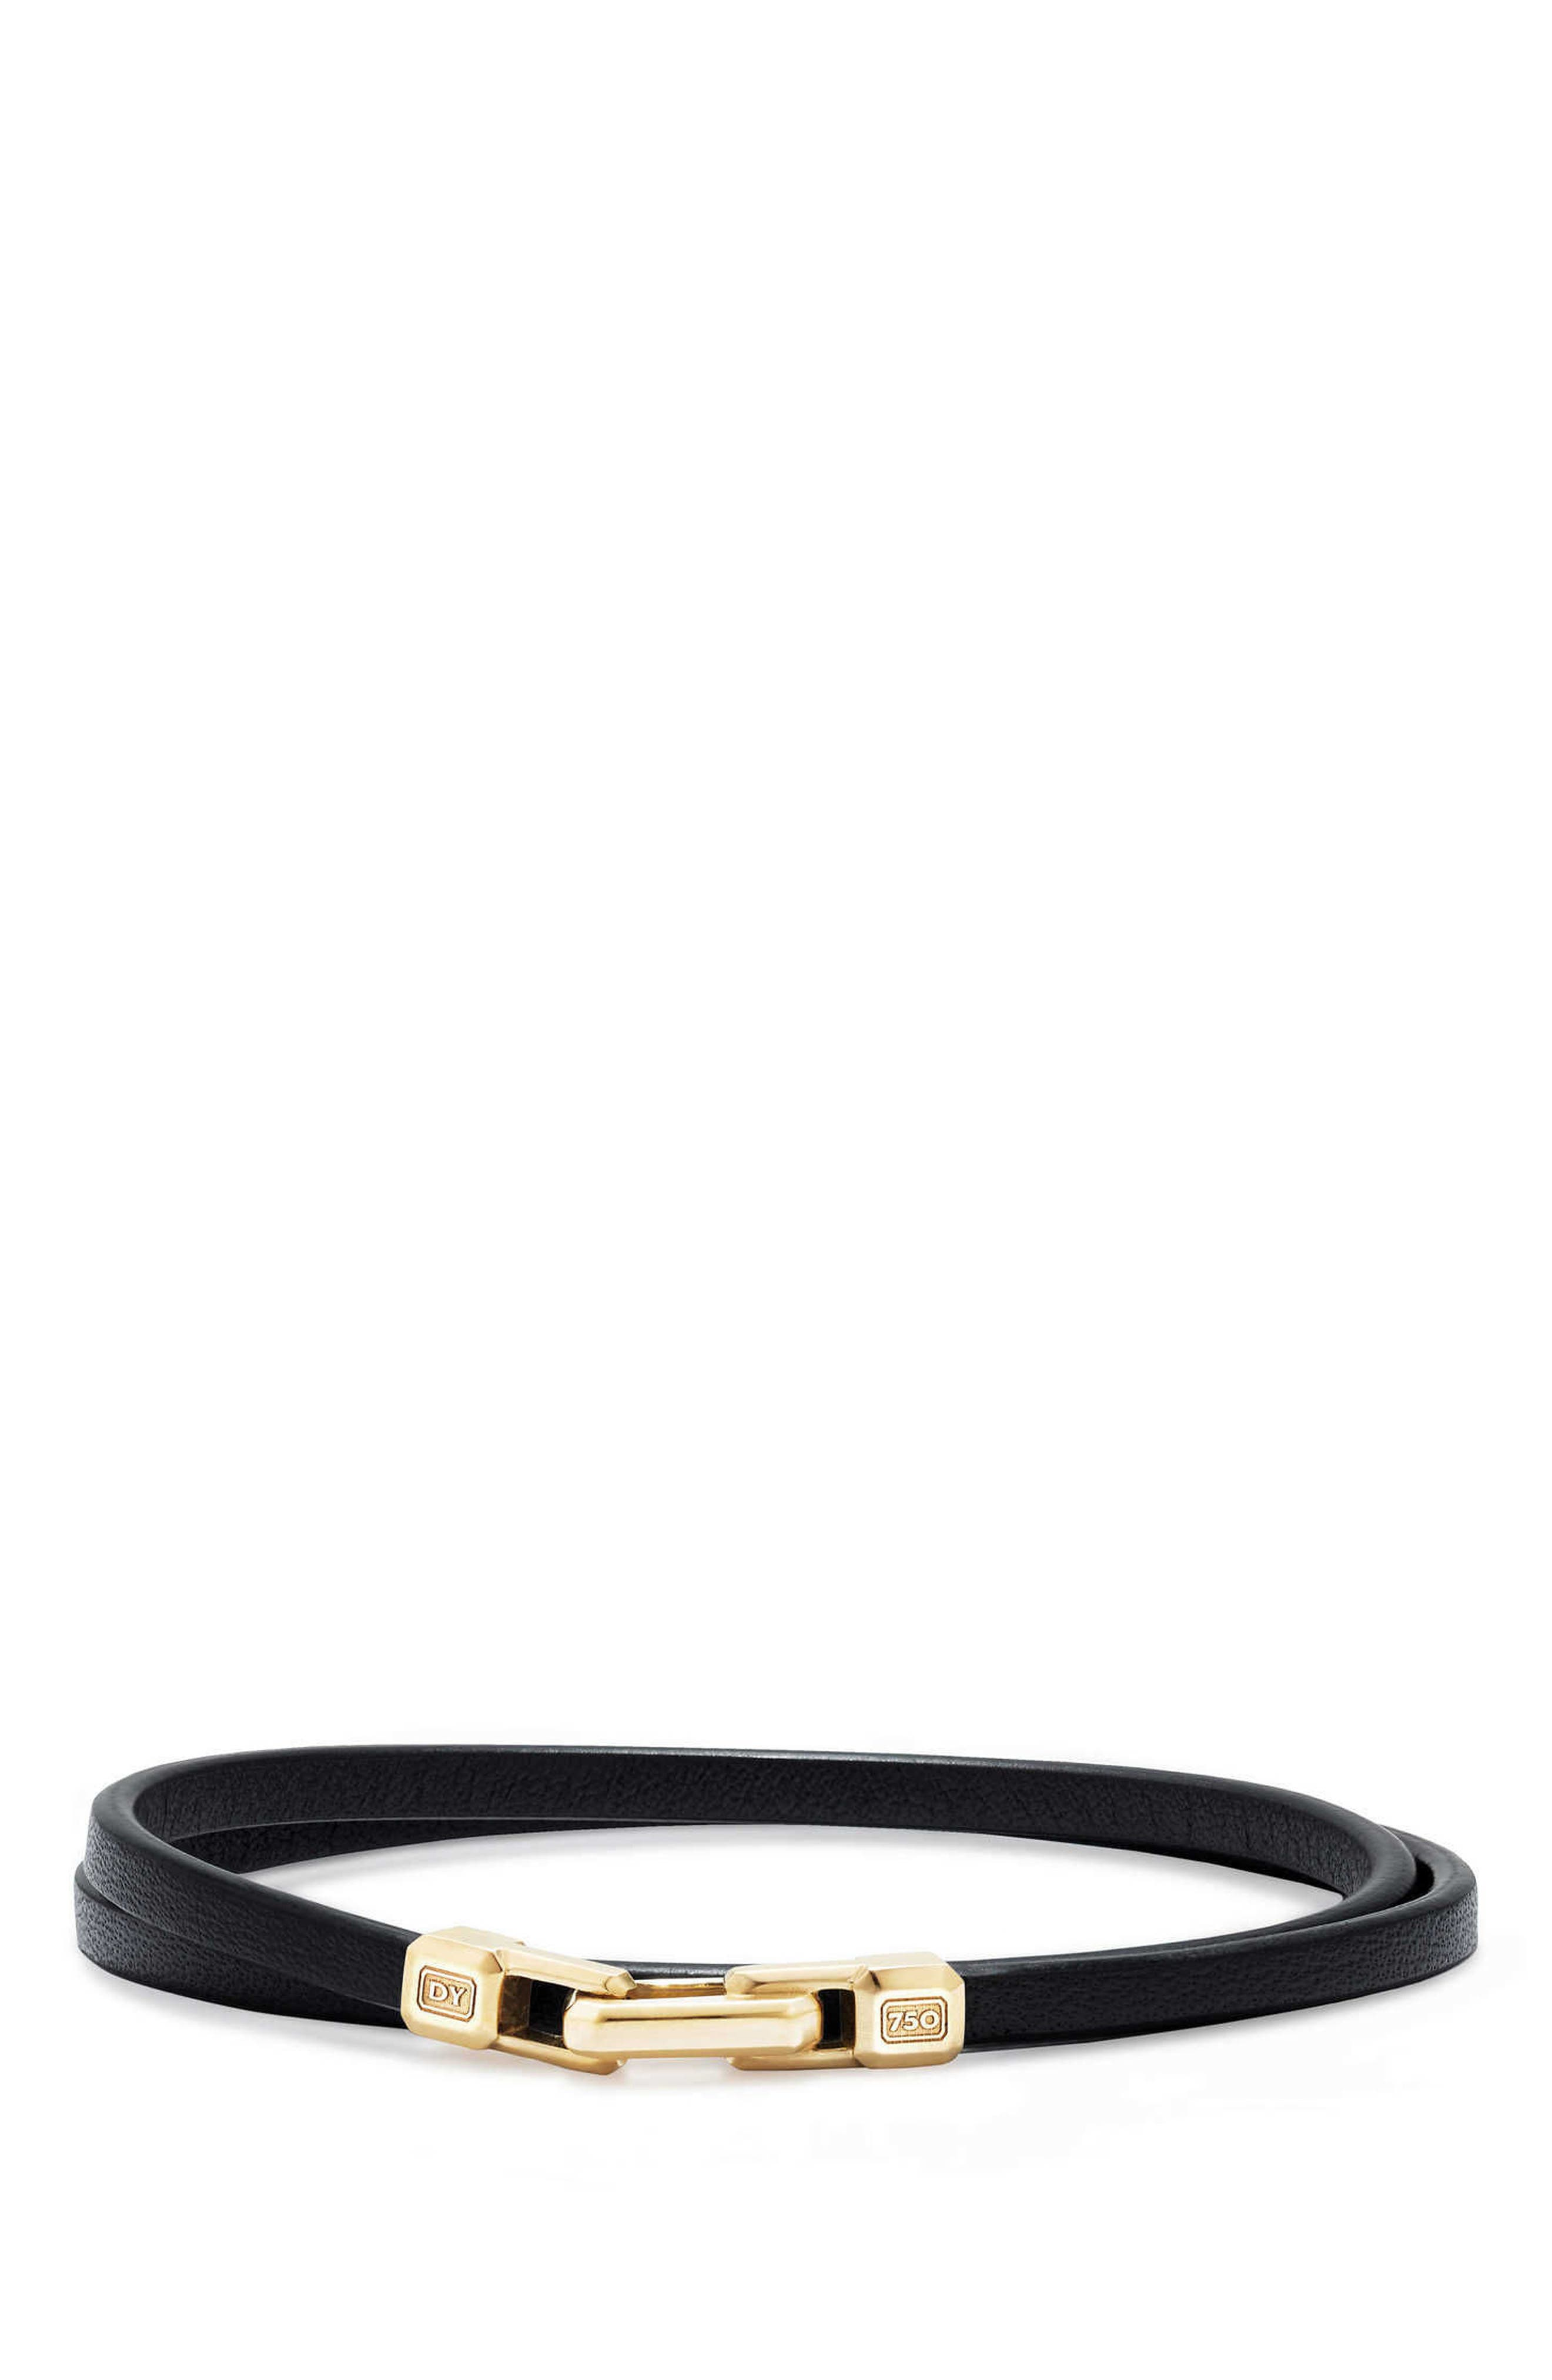 Streamline Double Wrap Leather Bracelet with 18K Gold,                             Main thumbnail 1, color,                             710